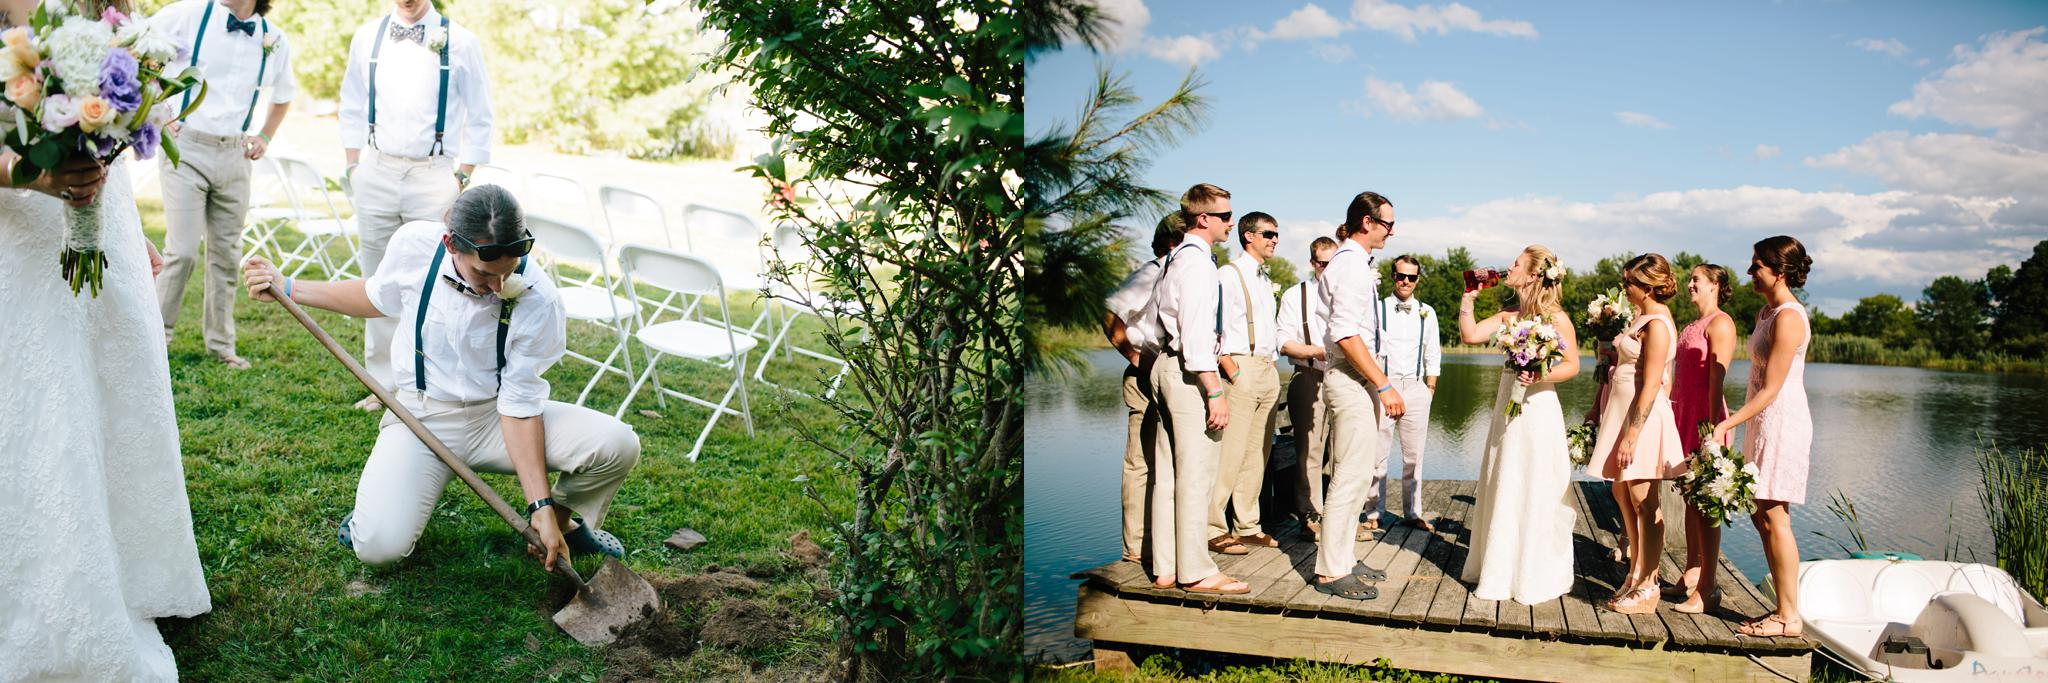 TUNKHANNOCK_PA_WEDDING_PHOTOGRAPHER_YOUNG_WEDDING_3605.jpg